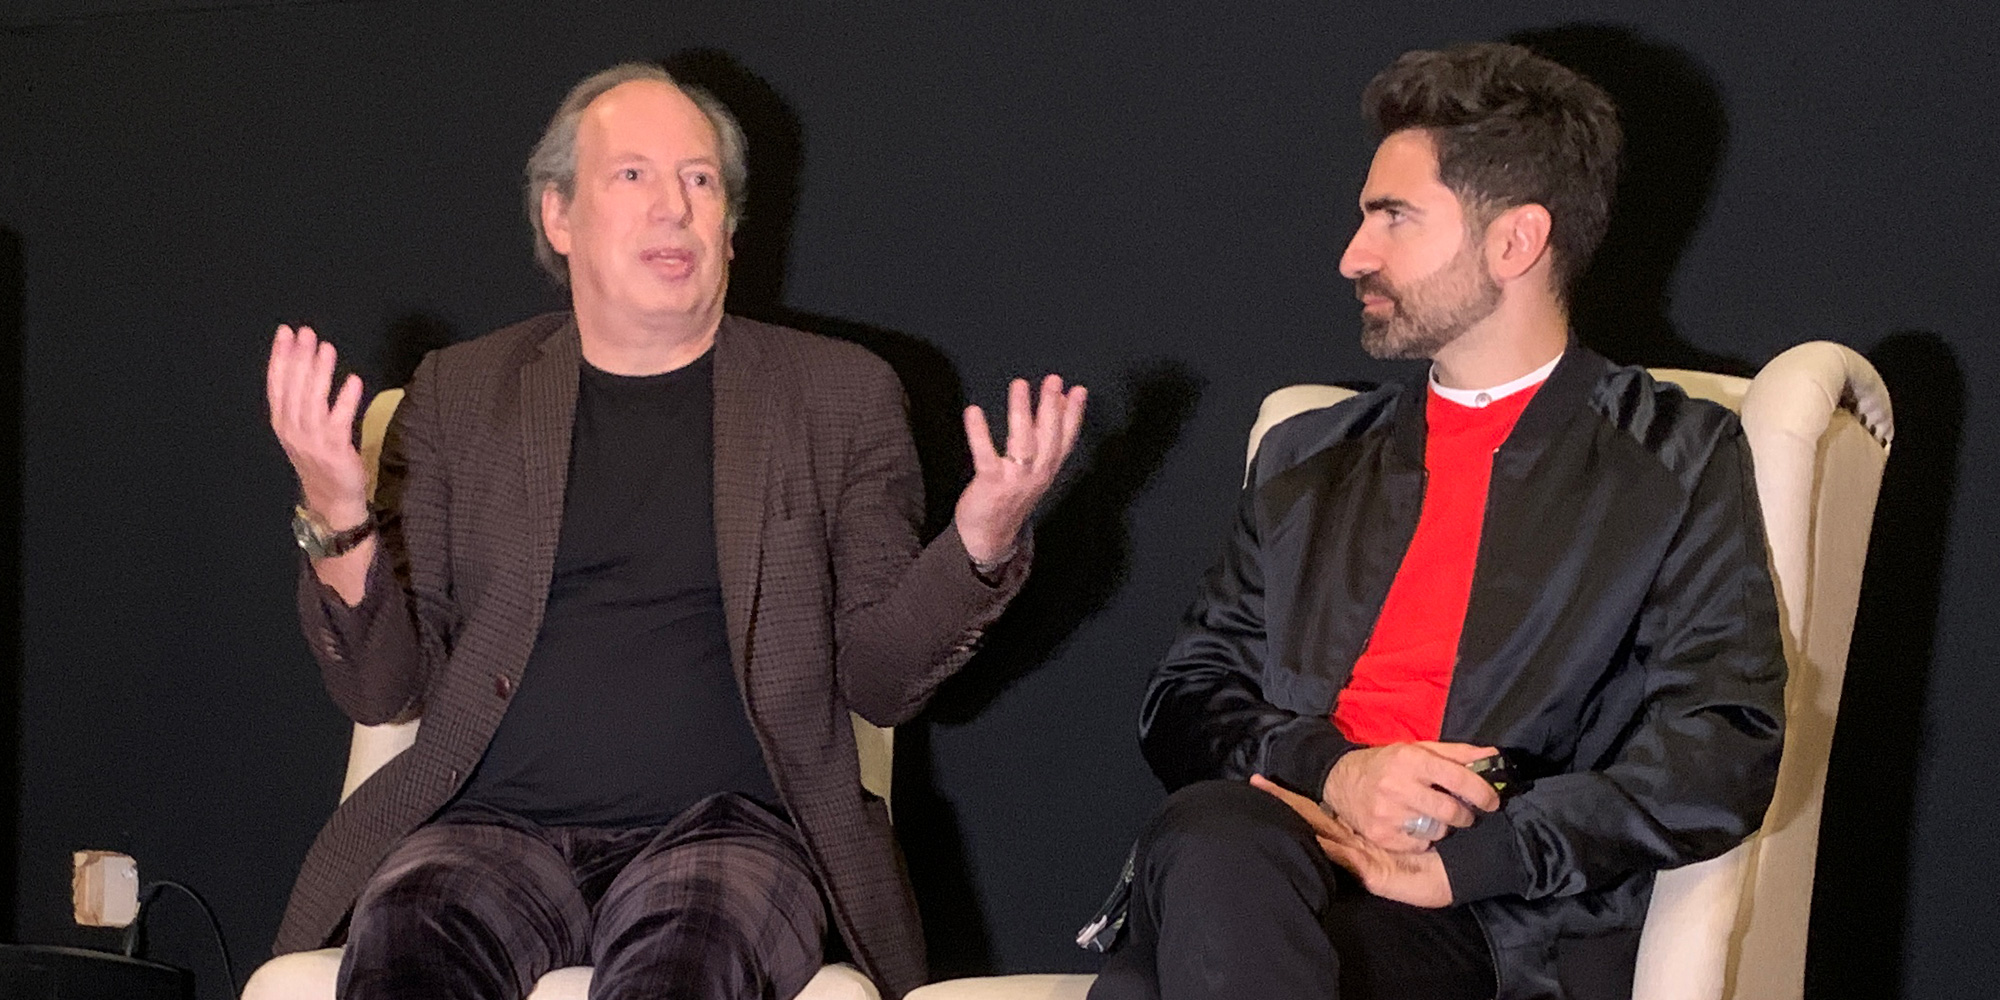 Hans Zimmer and BMW's Renzo Vitale